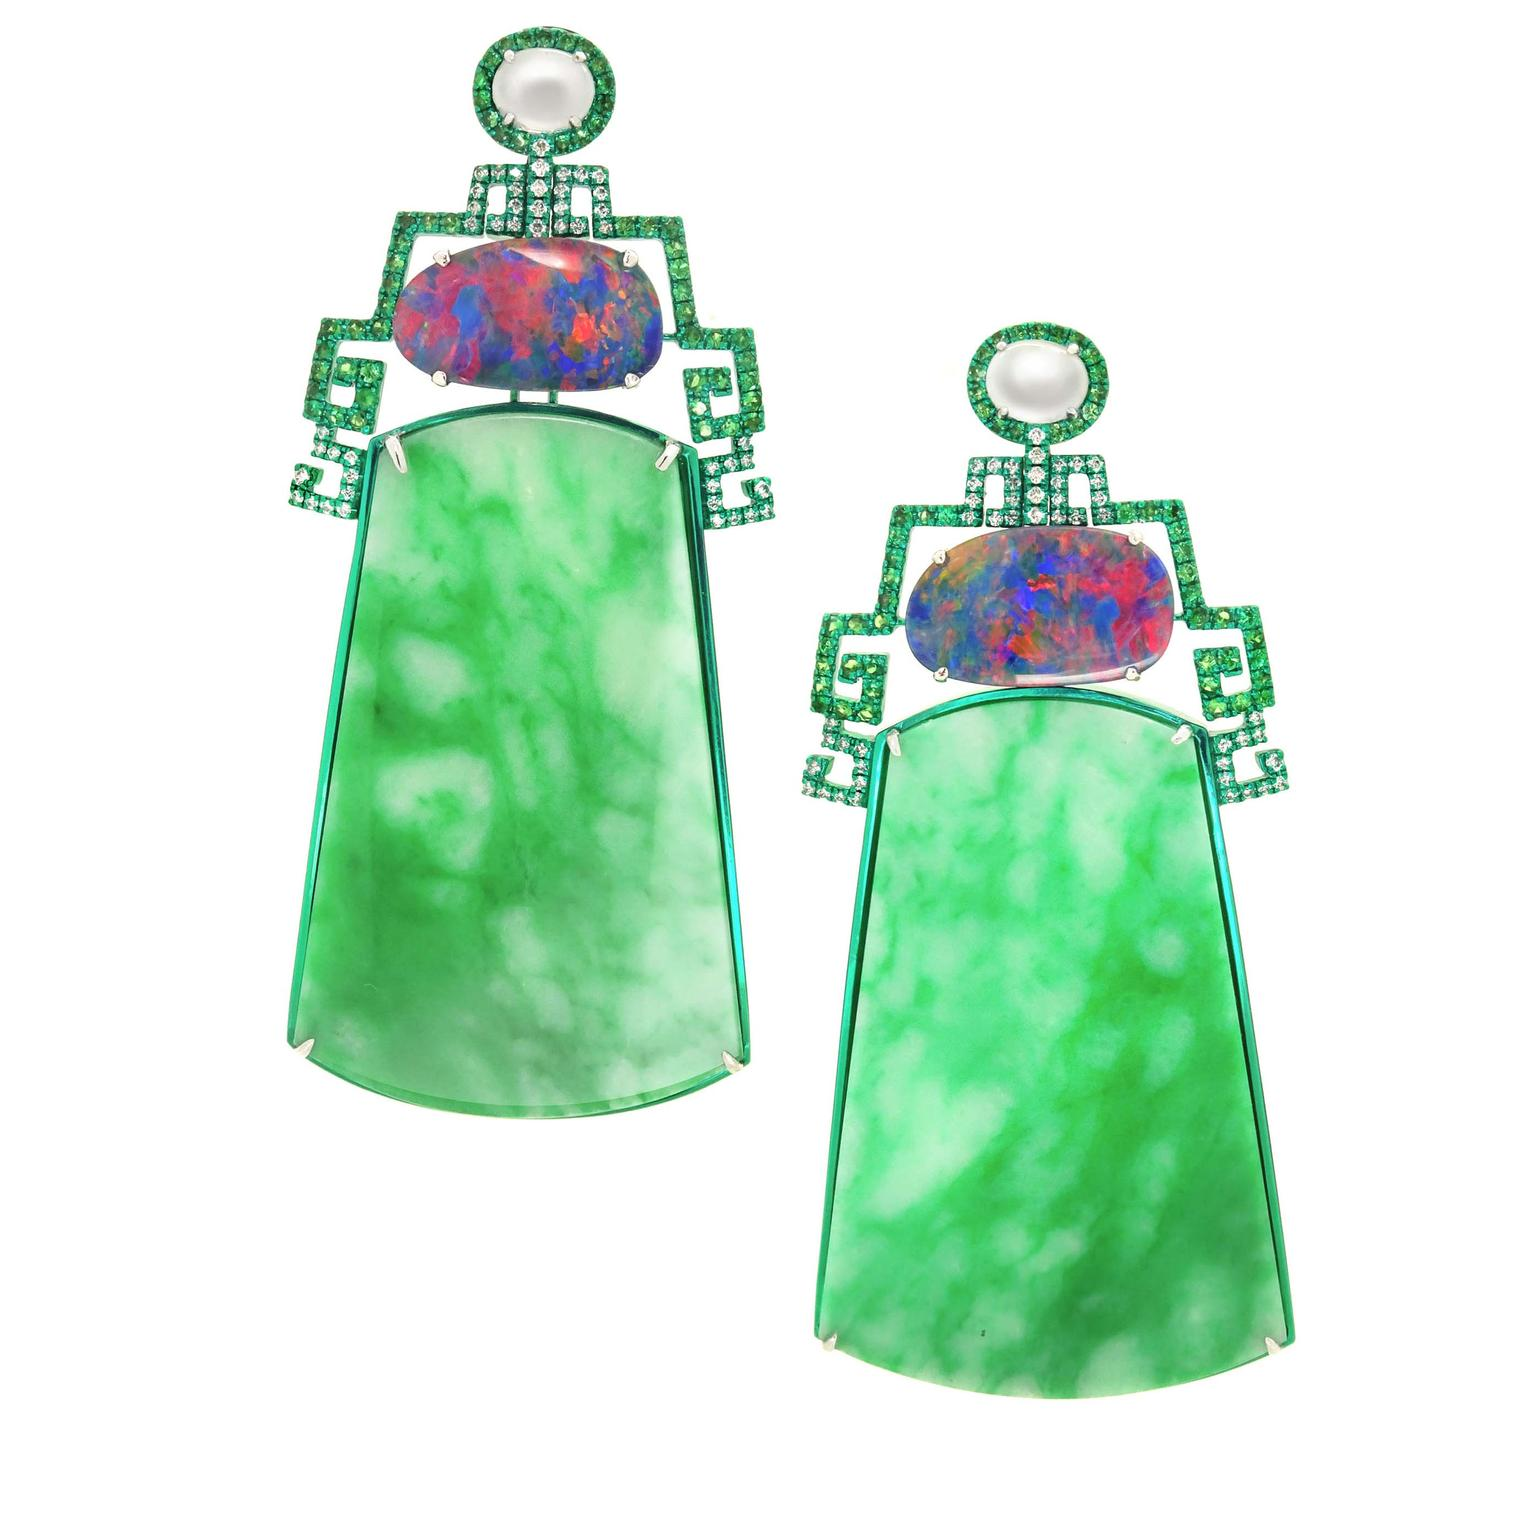 The Screen of Jadeites earrings from Austy Lee